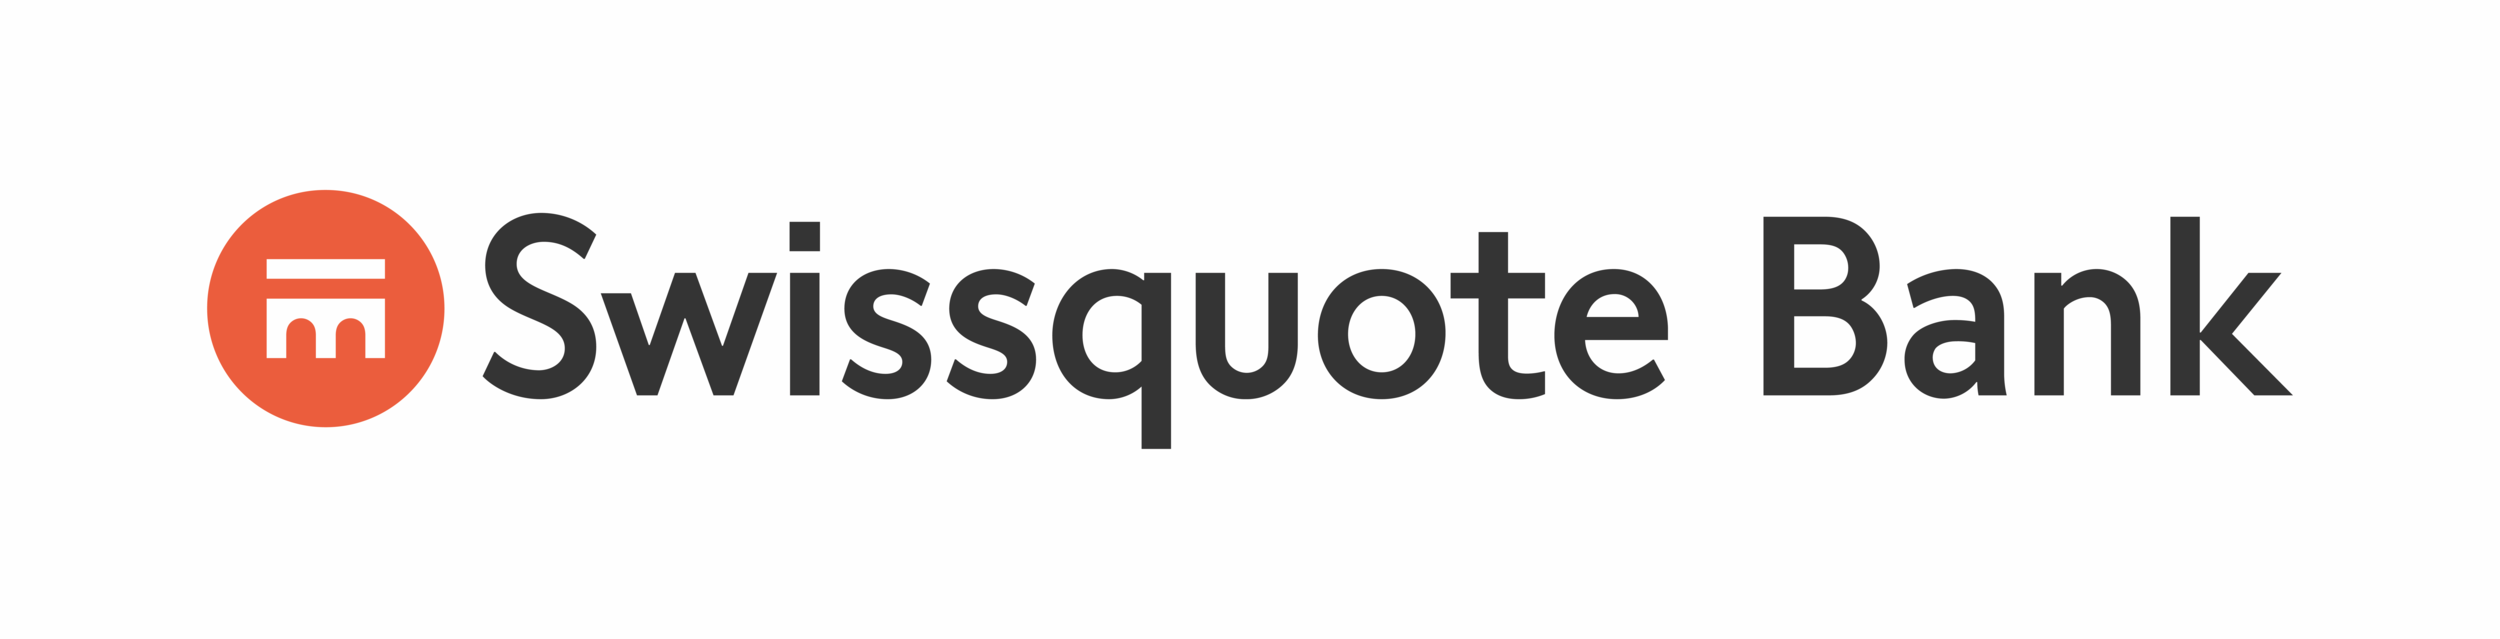 Swissquote Bank.png